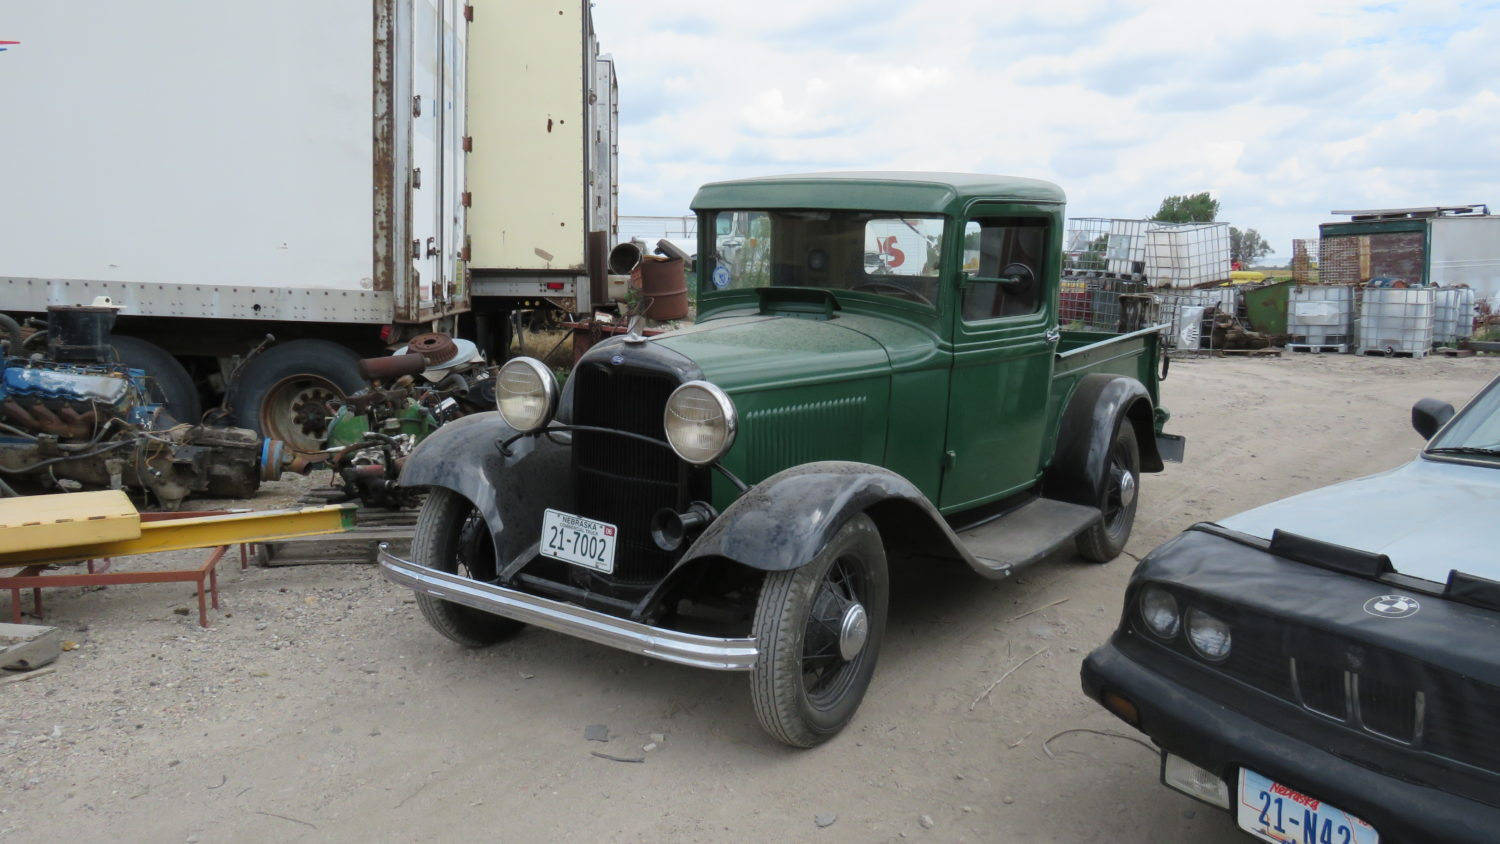 Appox 200 collector cars & trucks! The Eich & Friends Collection Auction - image 12